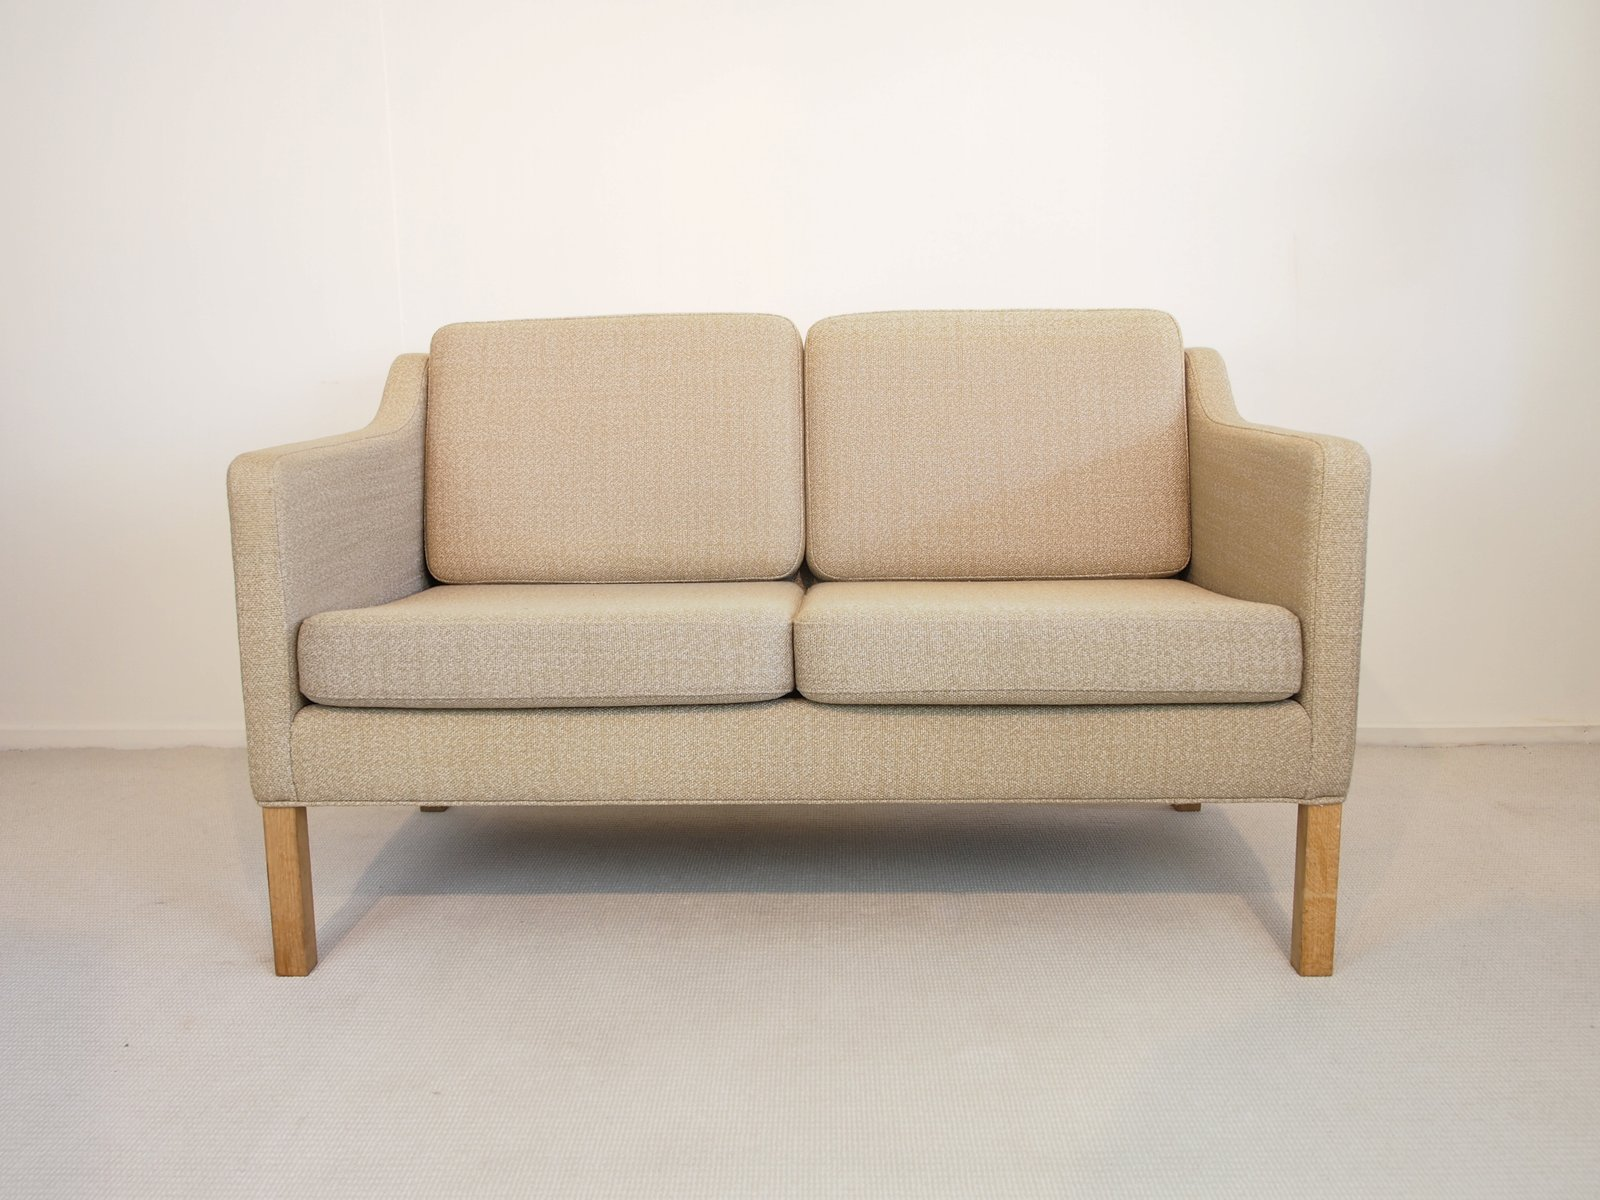 Vintage Model 2322 Two Seater Sofa By Børge Mogensen For Frederica At Pamono